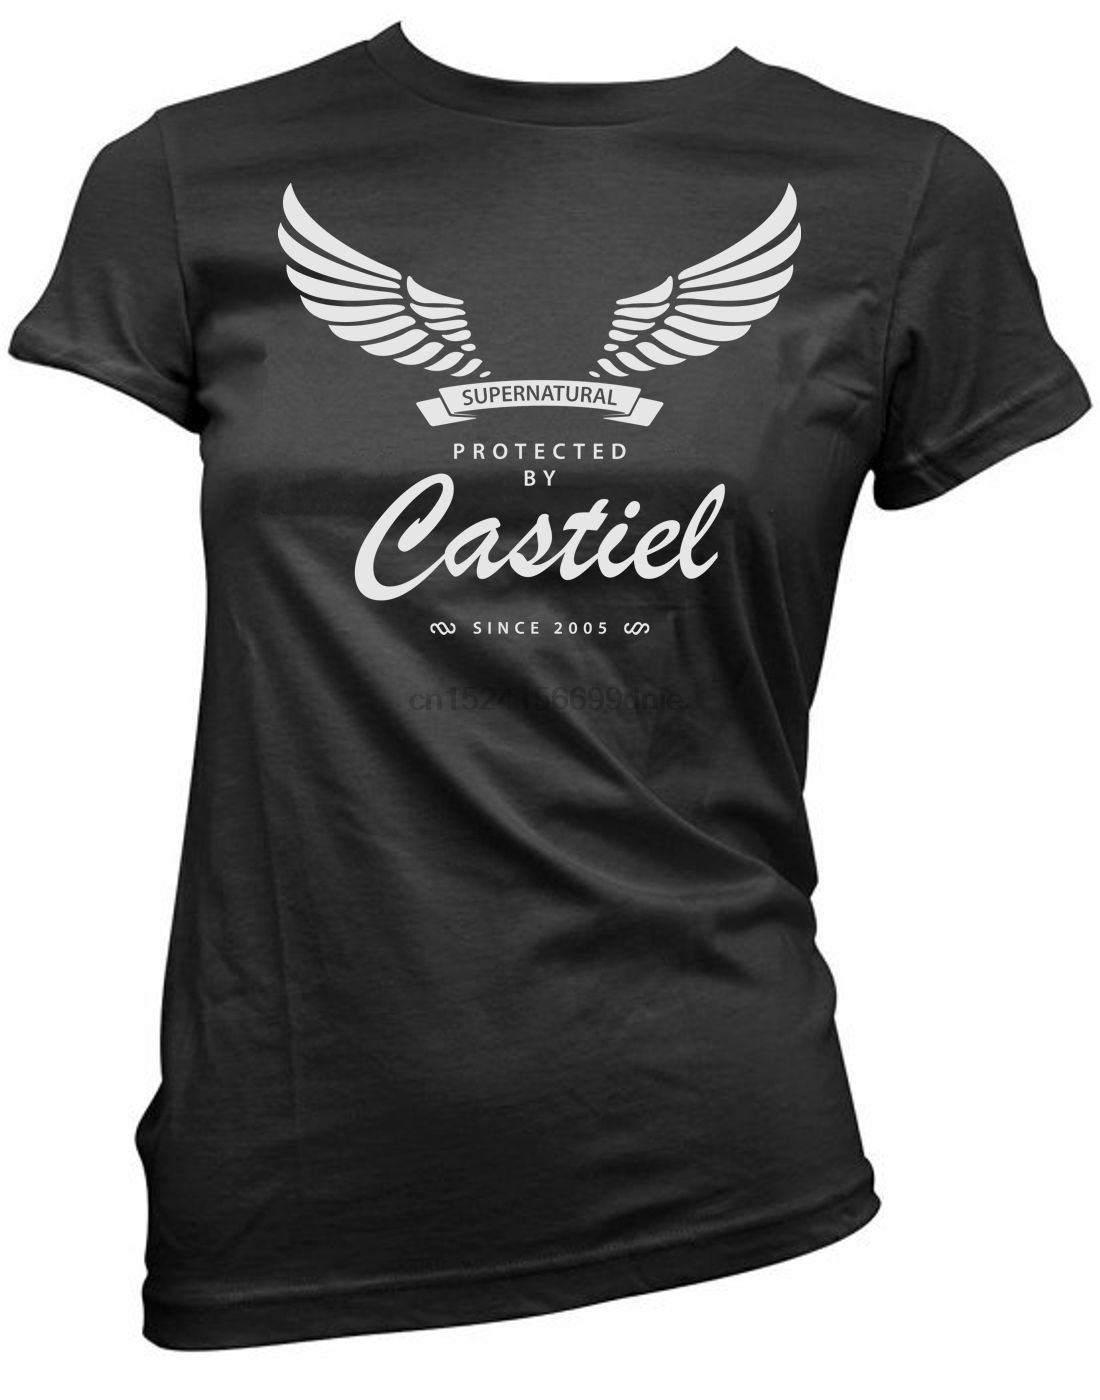 New! Perfect quality shirt castiel and get free shipping